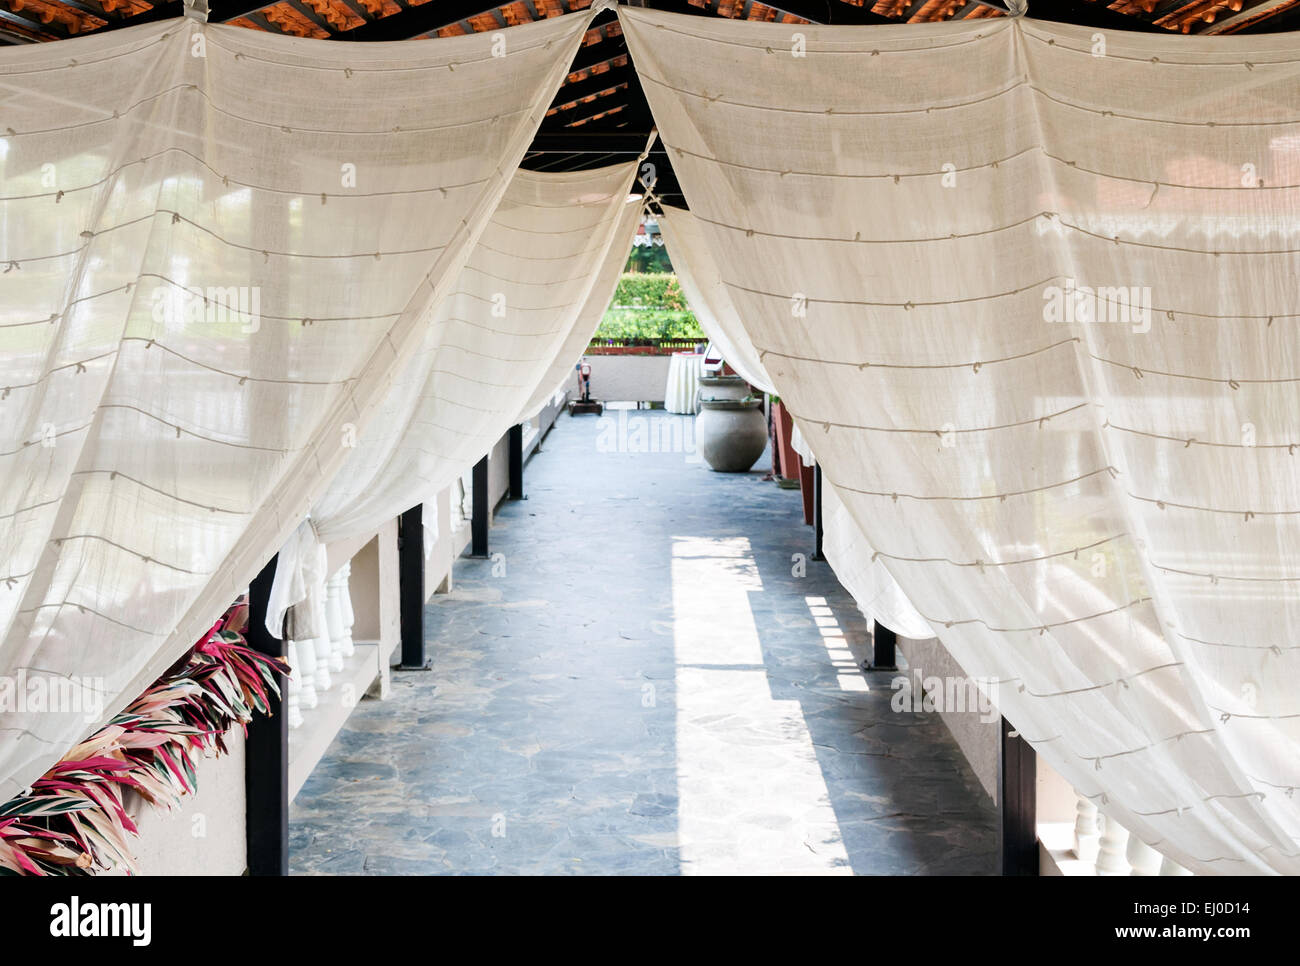 Clear white curtain along the pathway of restaurant. - Stock Image